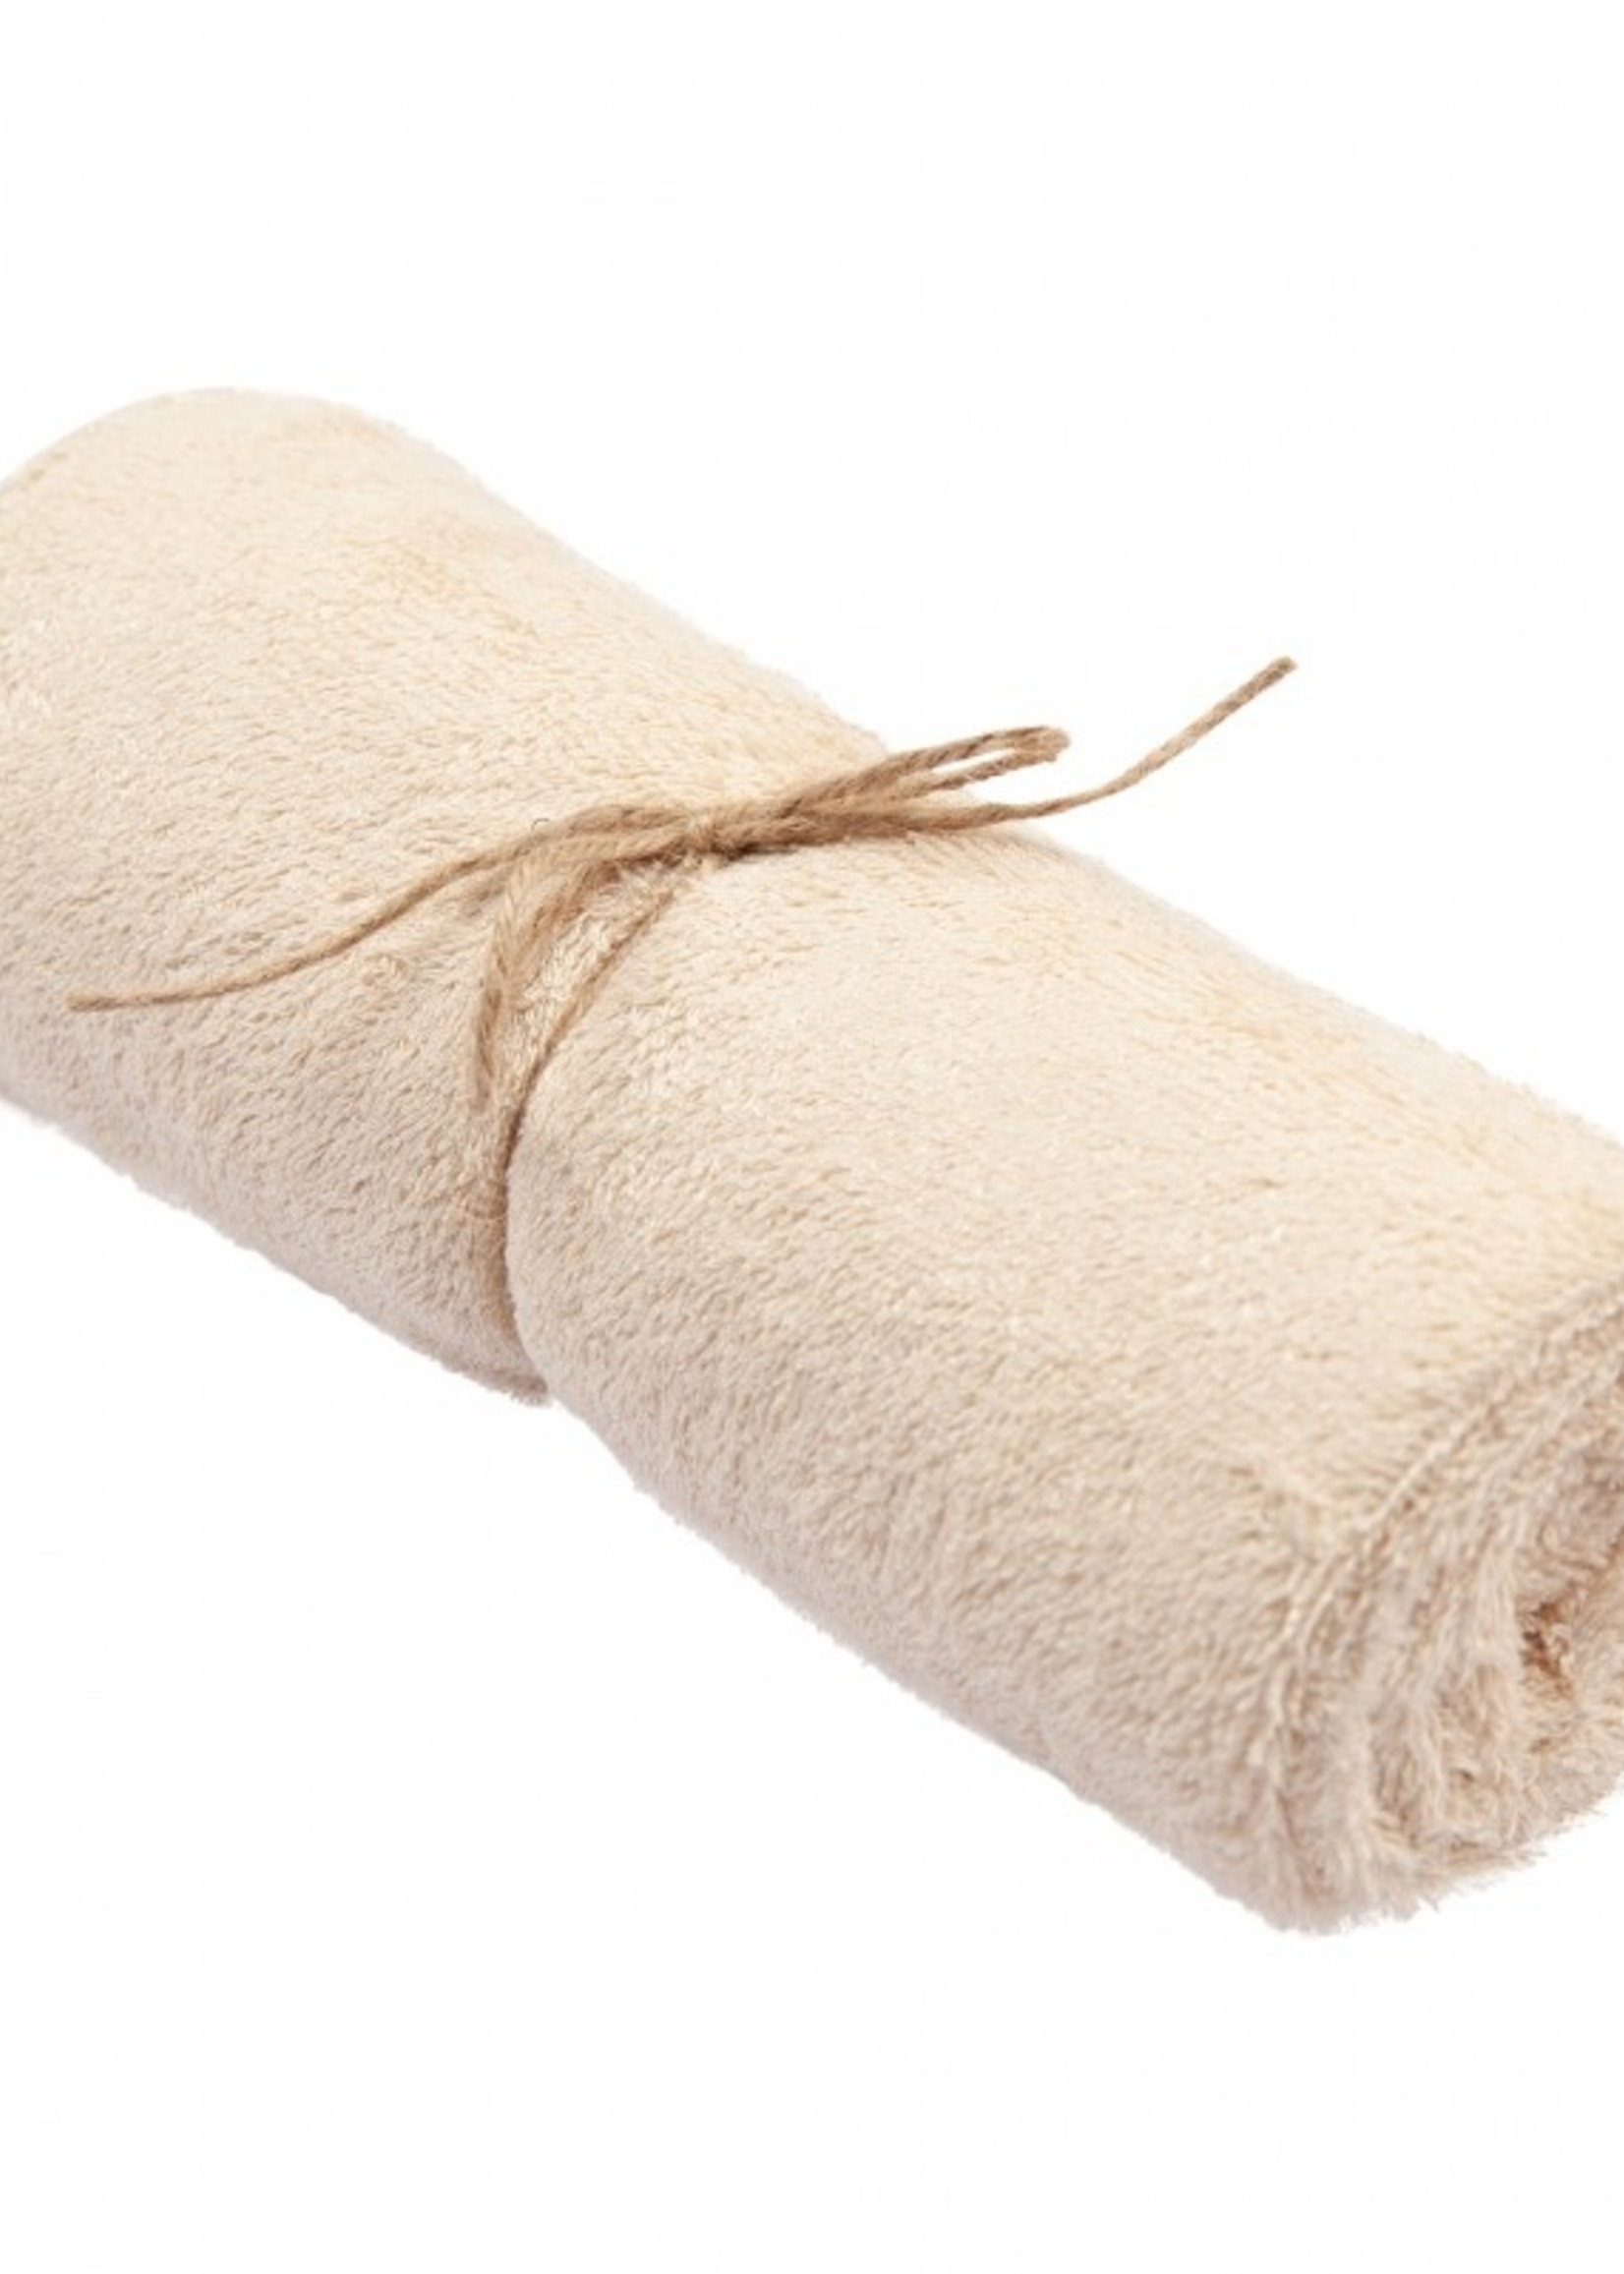 Timboo Towel Large - Frosted Almond